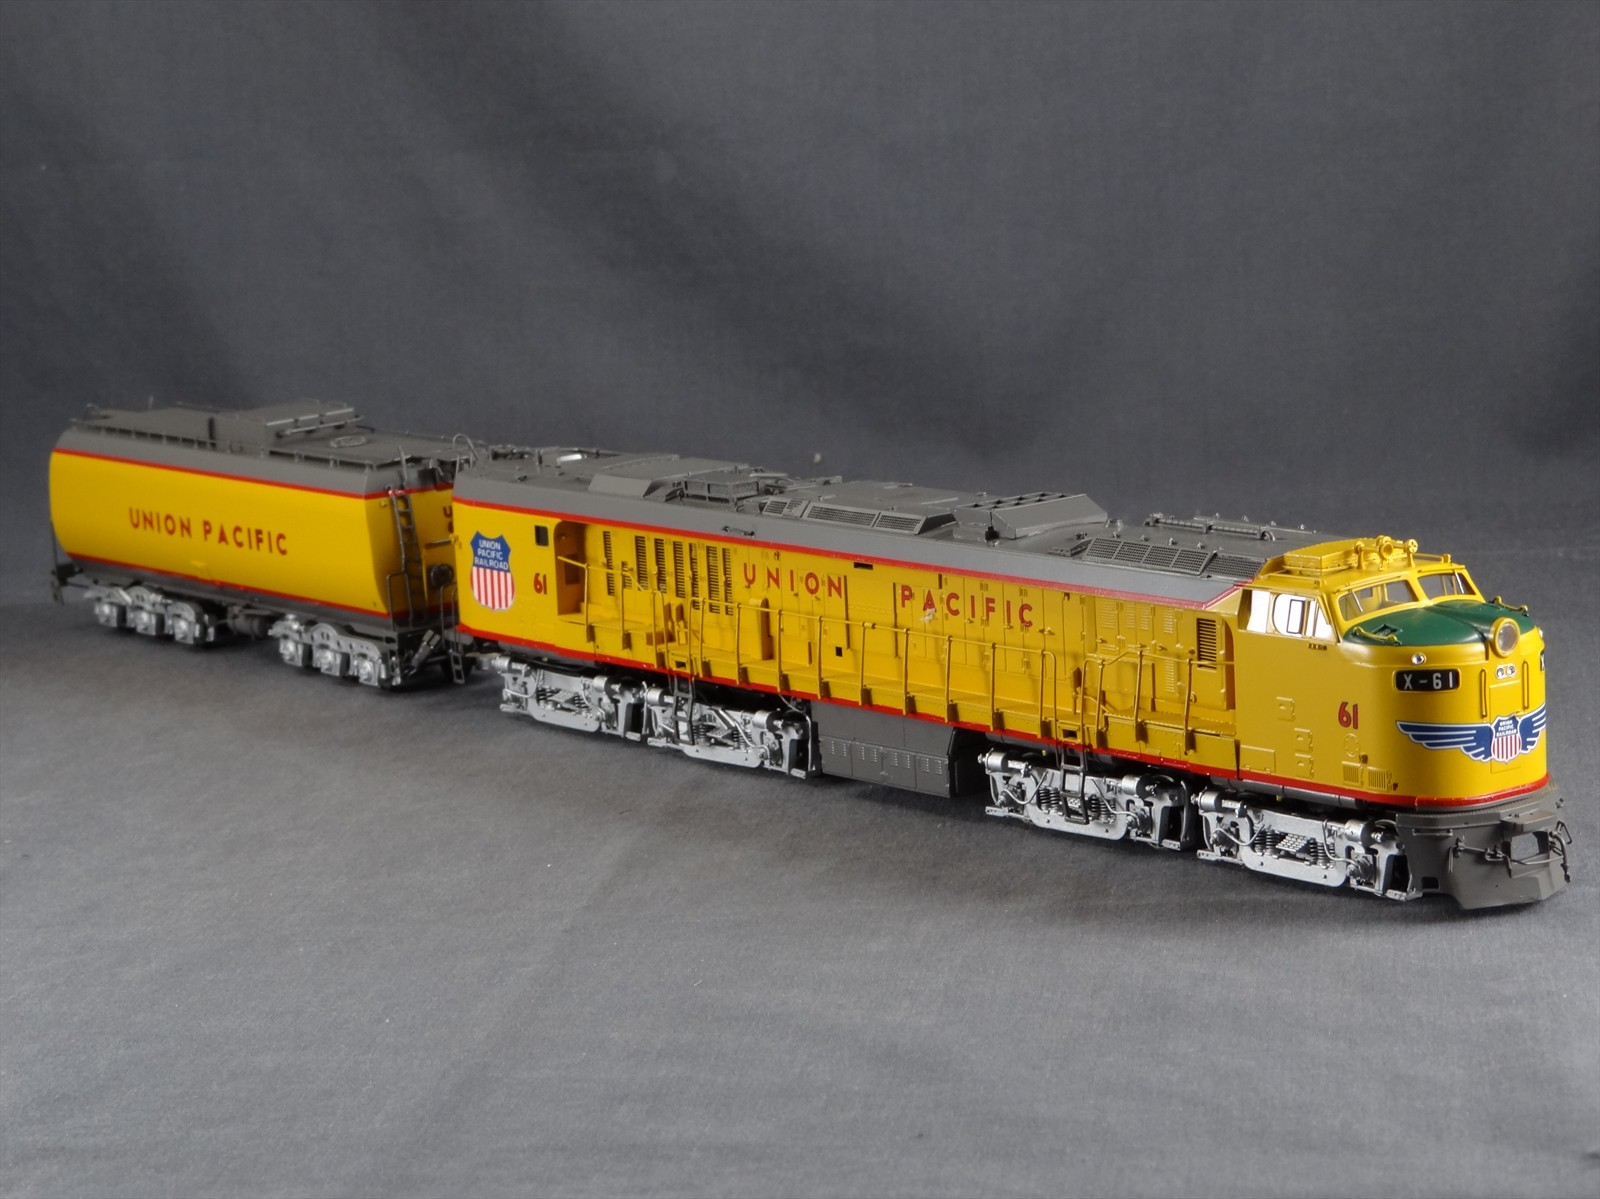 Overland 6711.1 UNION PACIFIC 'Veranda' GAS TURBINE Nr. 61.11